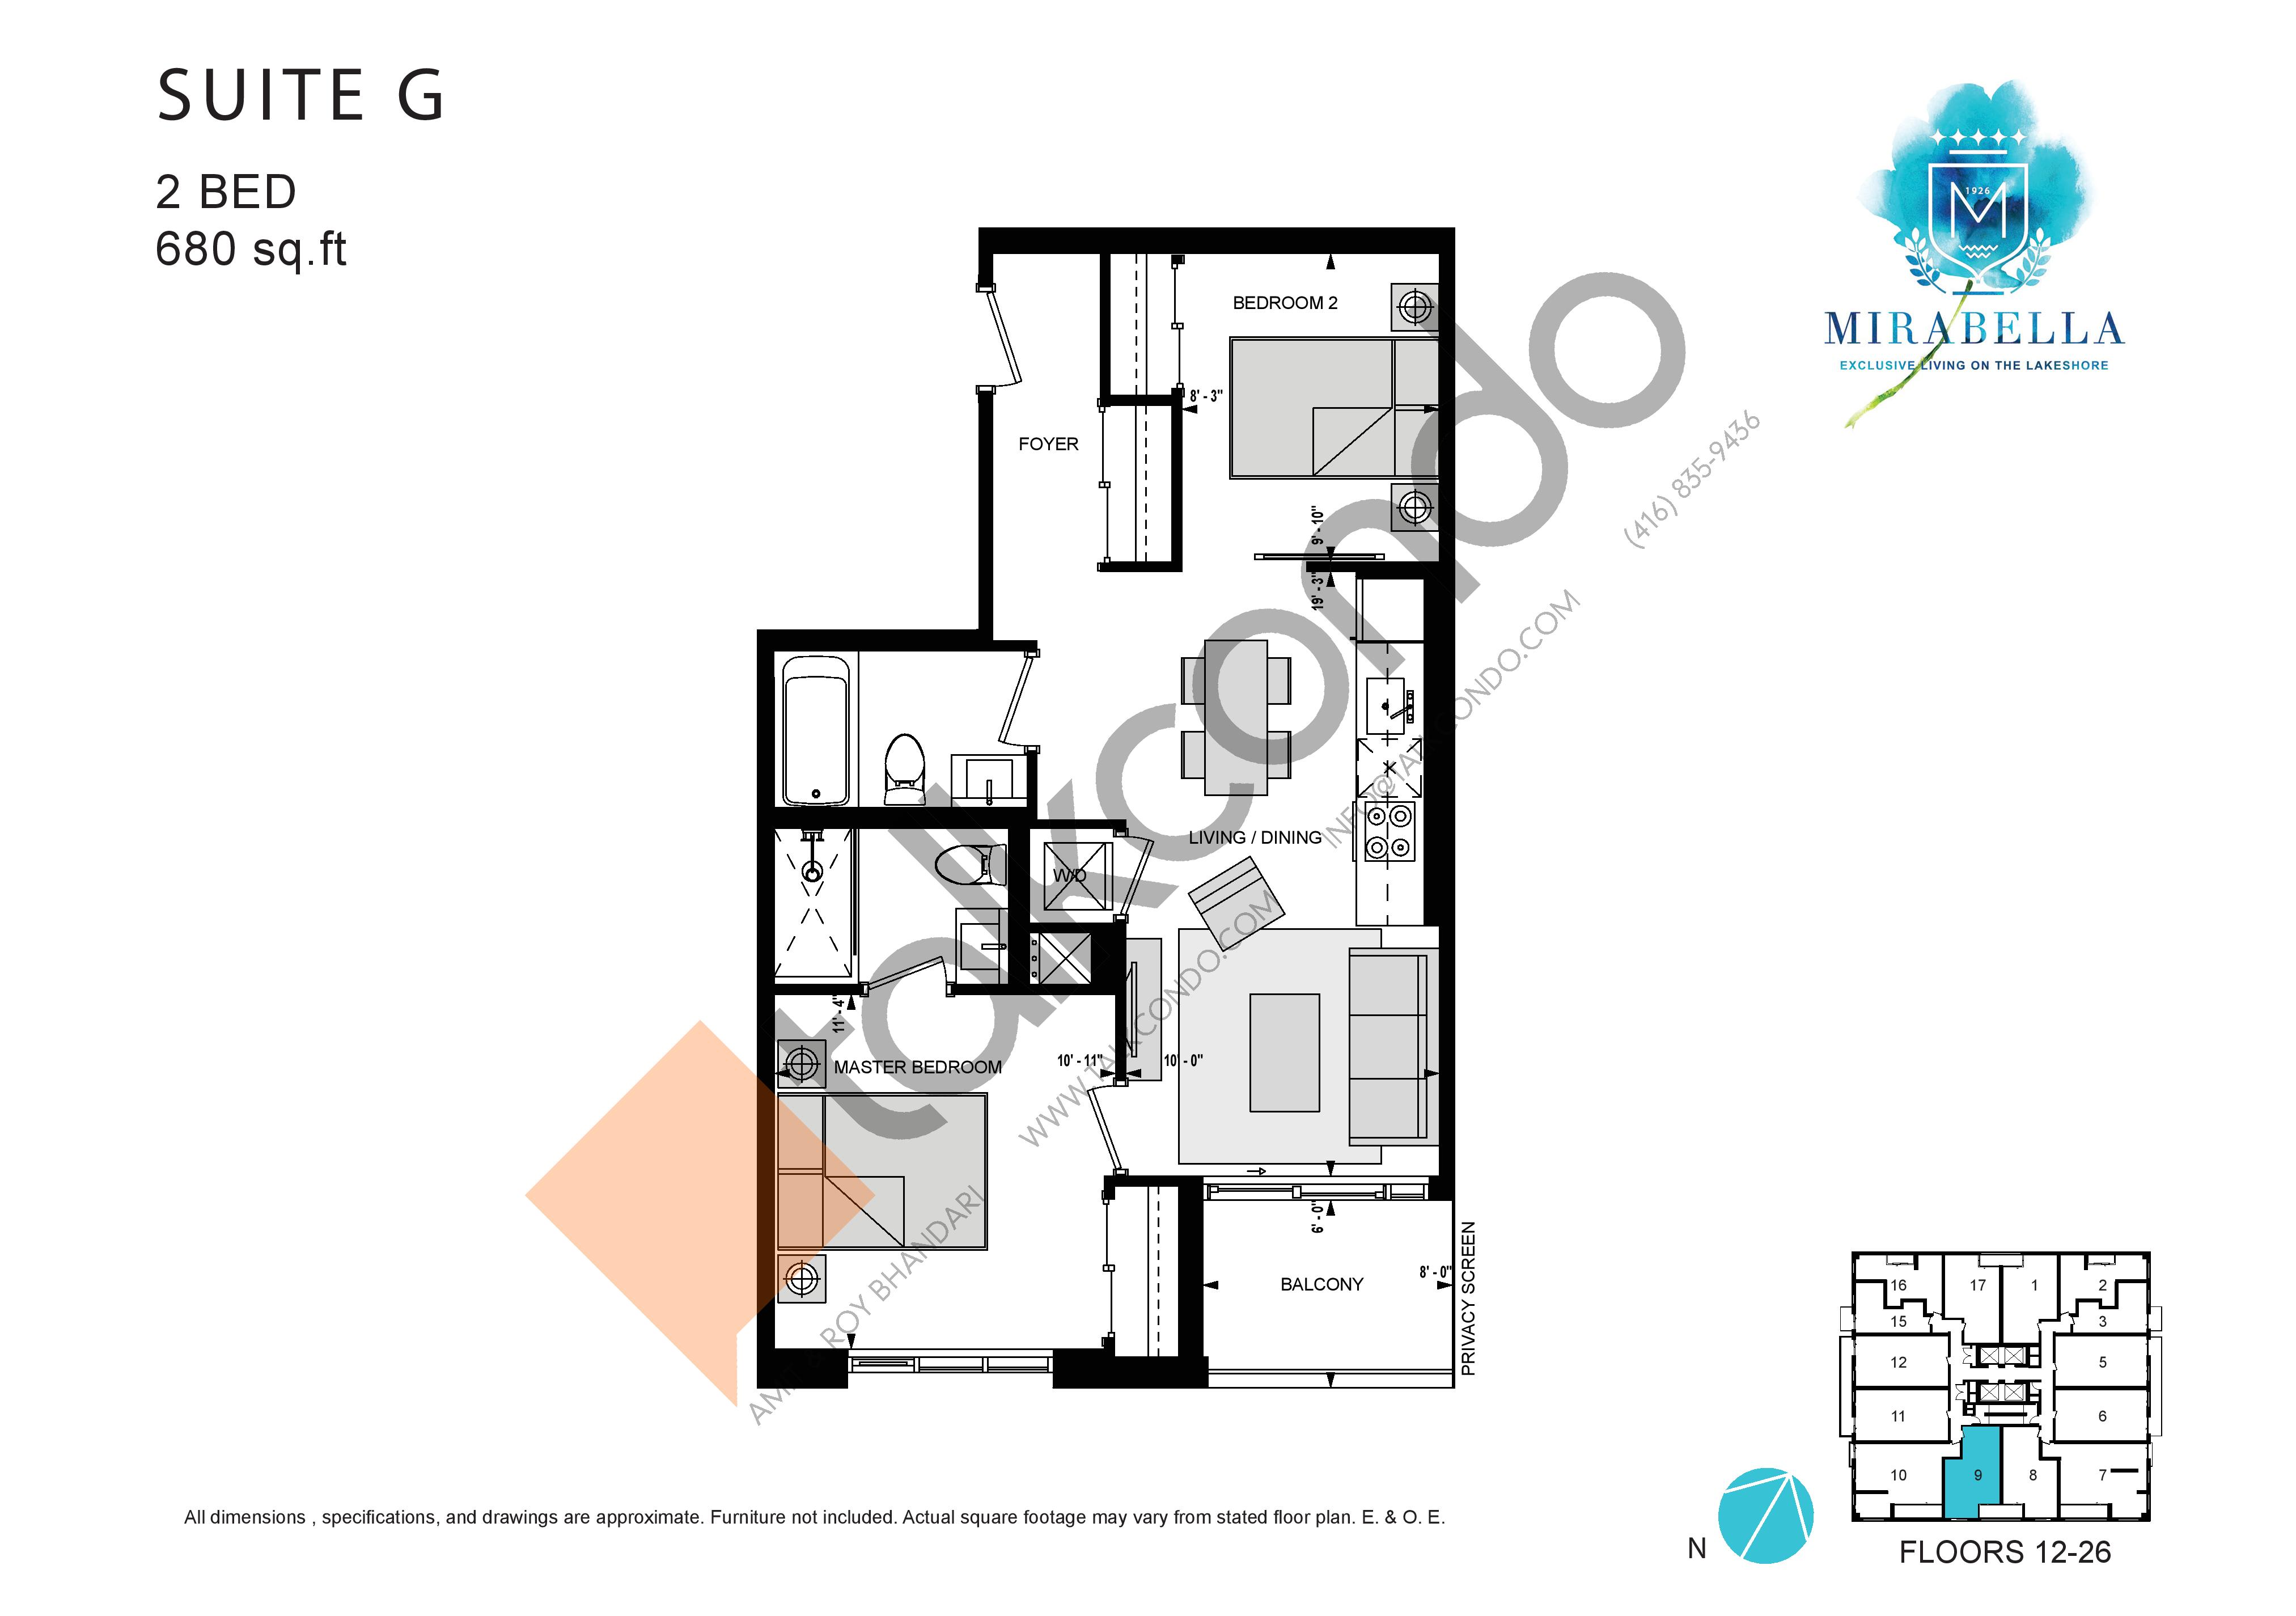 Suite G Floor Plan at Mirabella Luxury Condos East Tower - 680 sq.ft